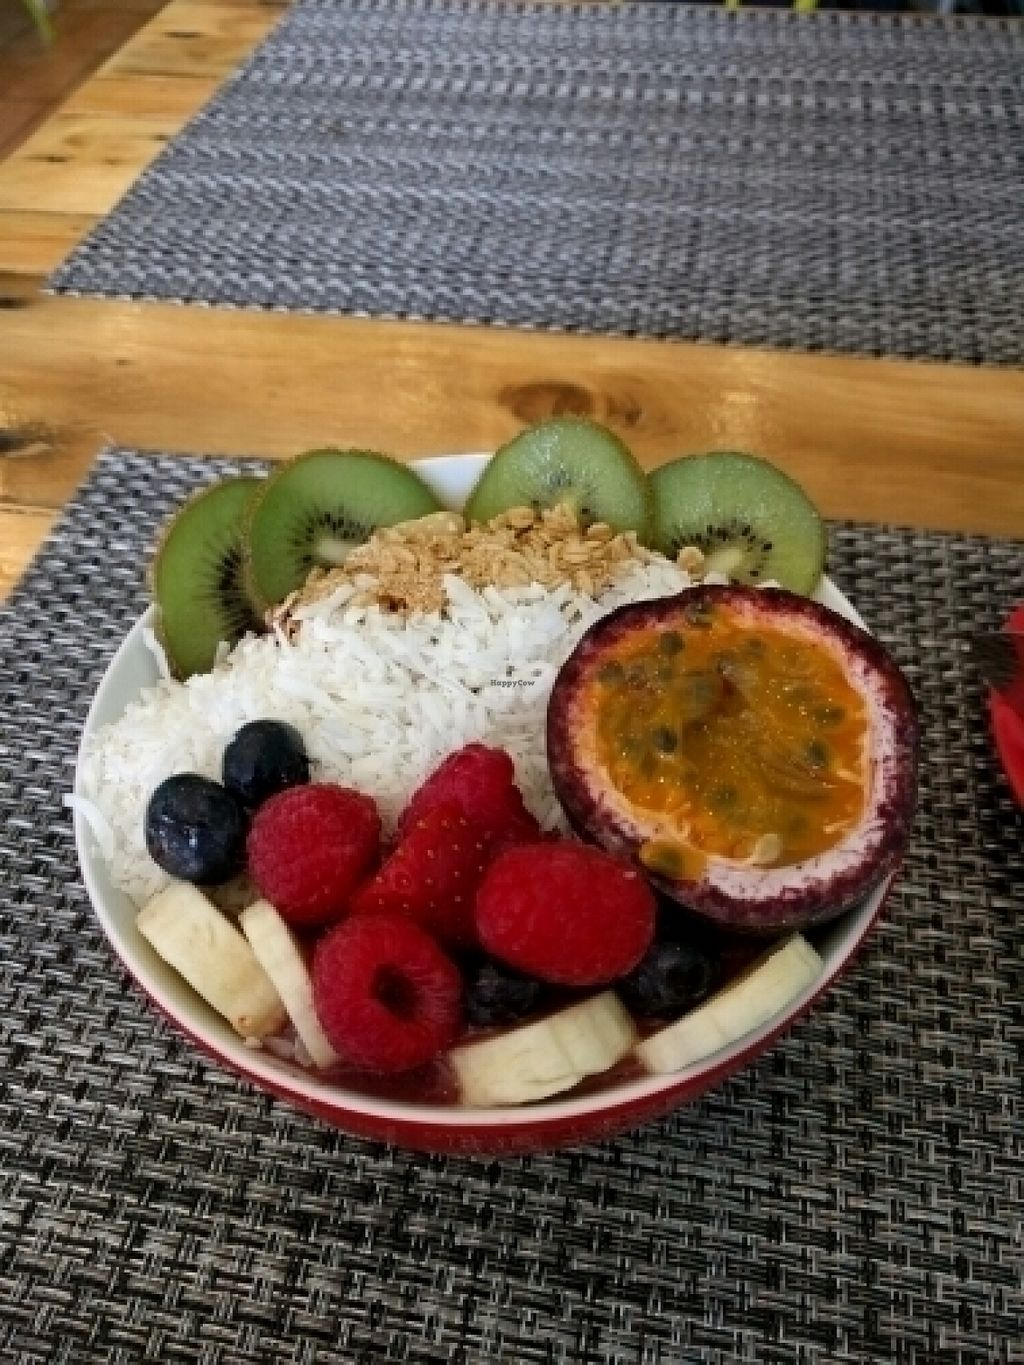 """Photo of CLOSED: Veg to Differ  by <a href=""""/members/profile/JackDeLacy"""">JackDeLacy</a> <br/>Acai Bowl  <br/> July 19, 2016  - <a href='/contact/abuse/image/75698/160797'>Report</a>"""